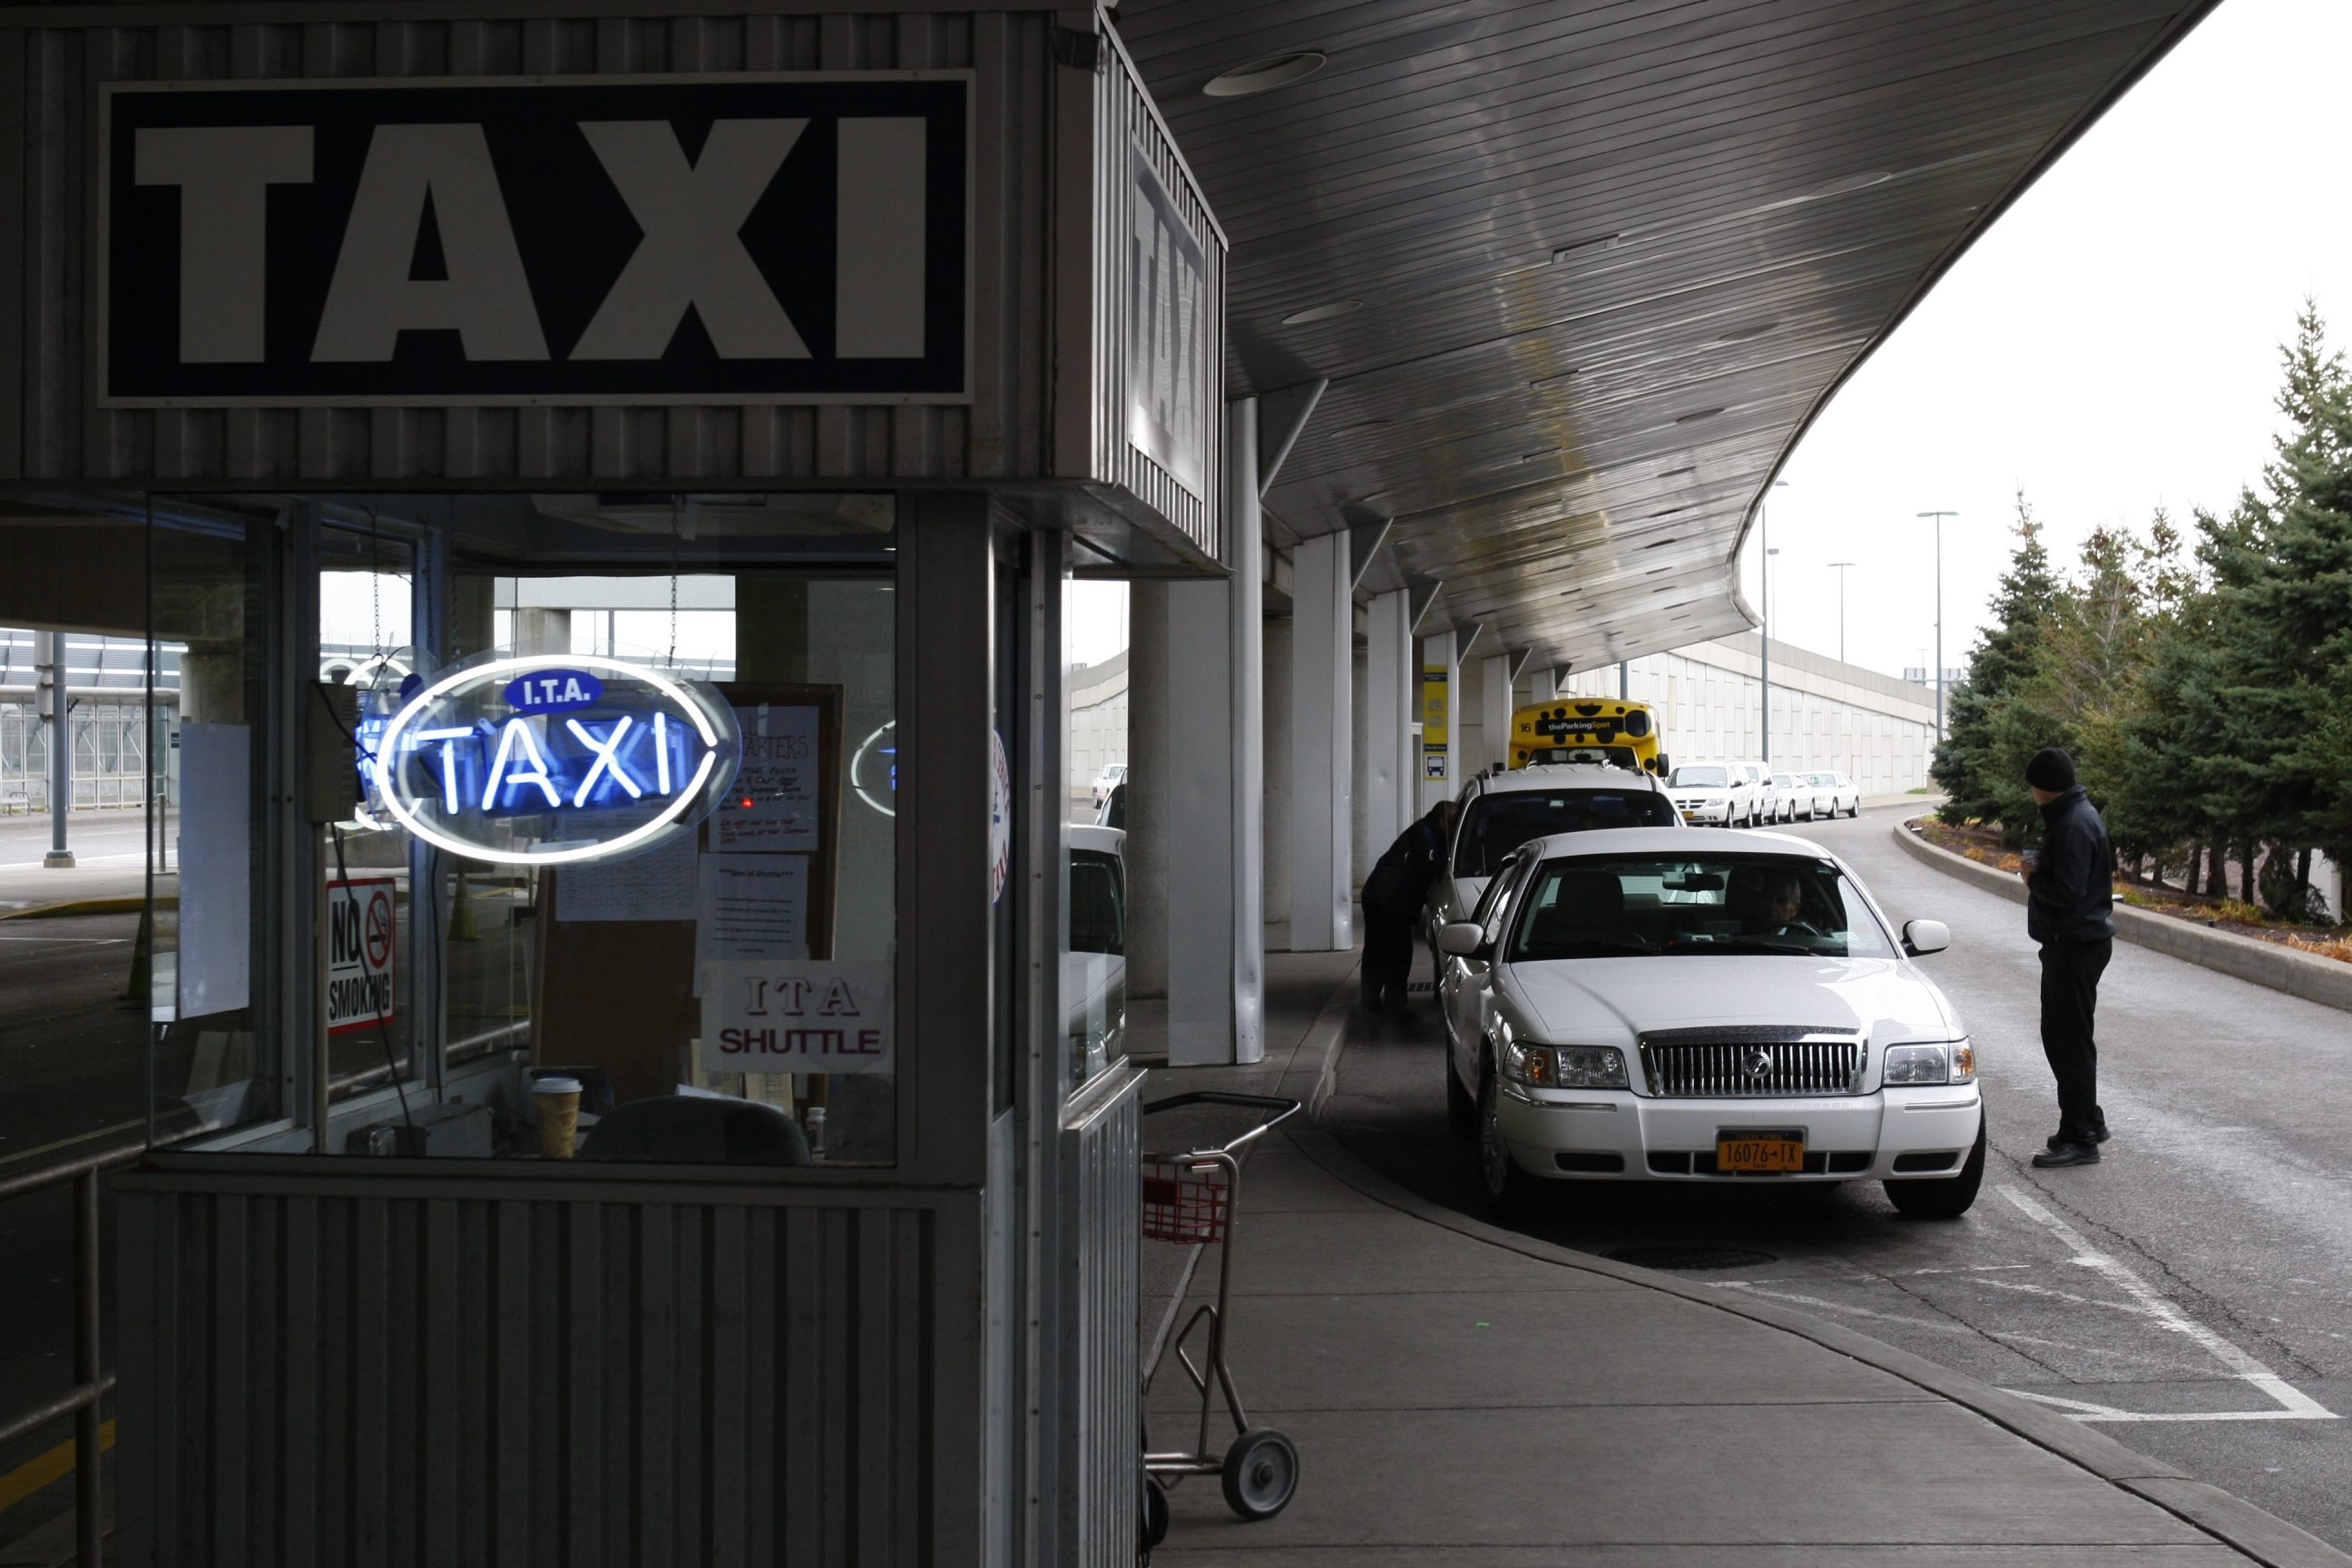 Cheektowaga has proposed extending the requirements for taxis operating to and from the Buffalo Niagara International Airport.